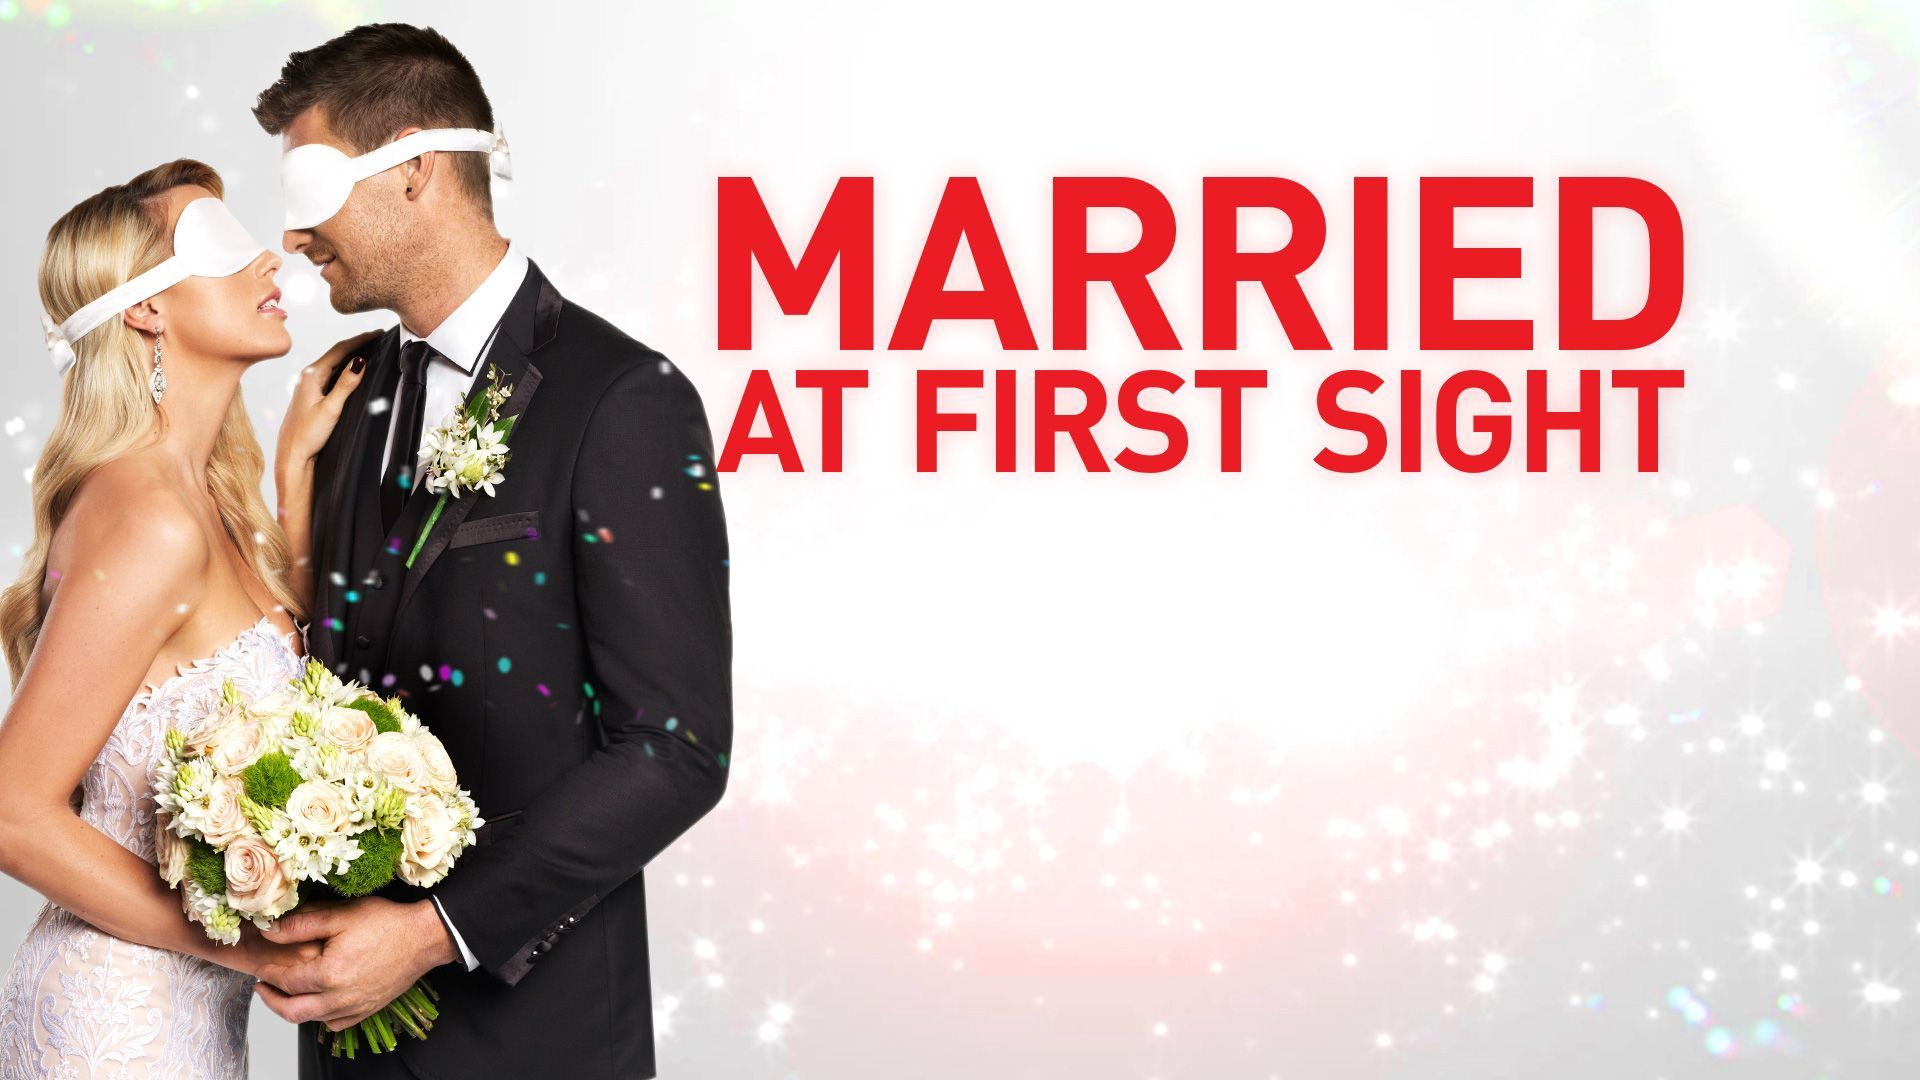 mafs-logo-married-at-first-sight.jpg